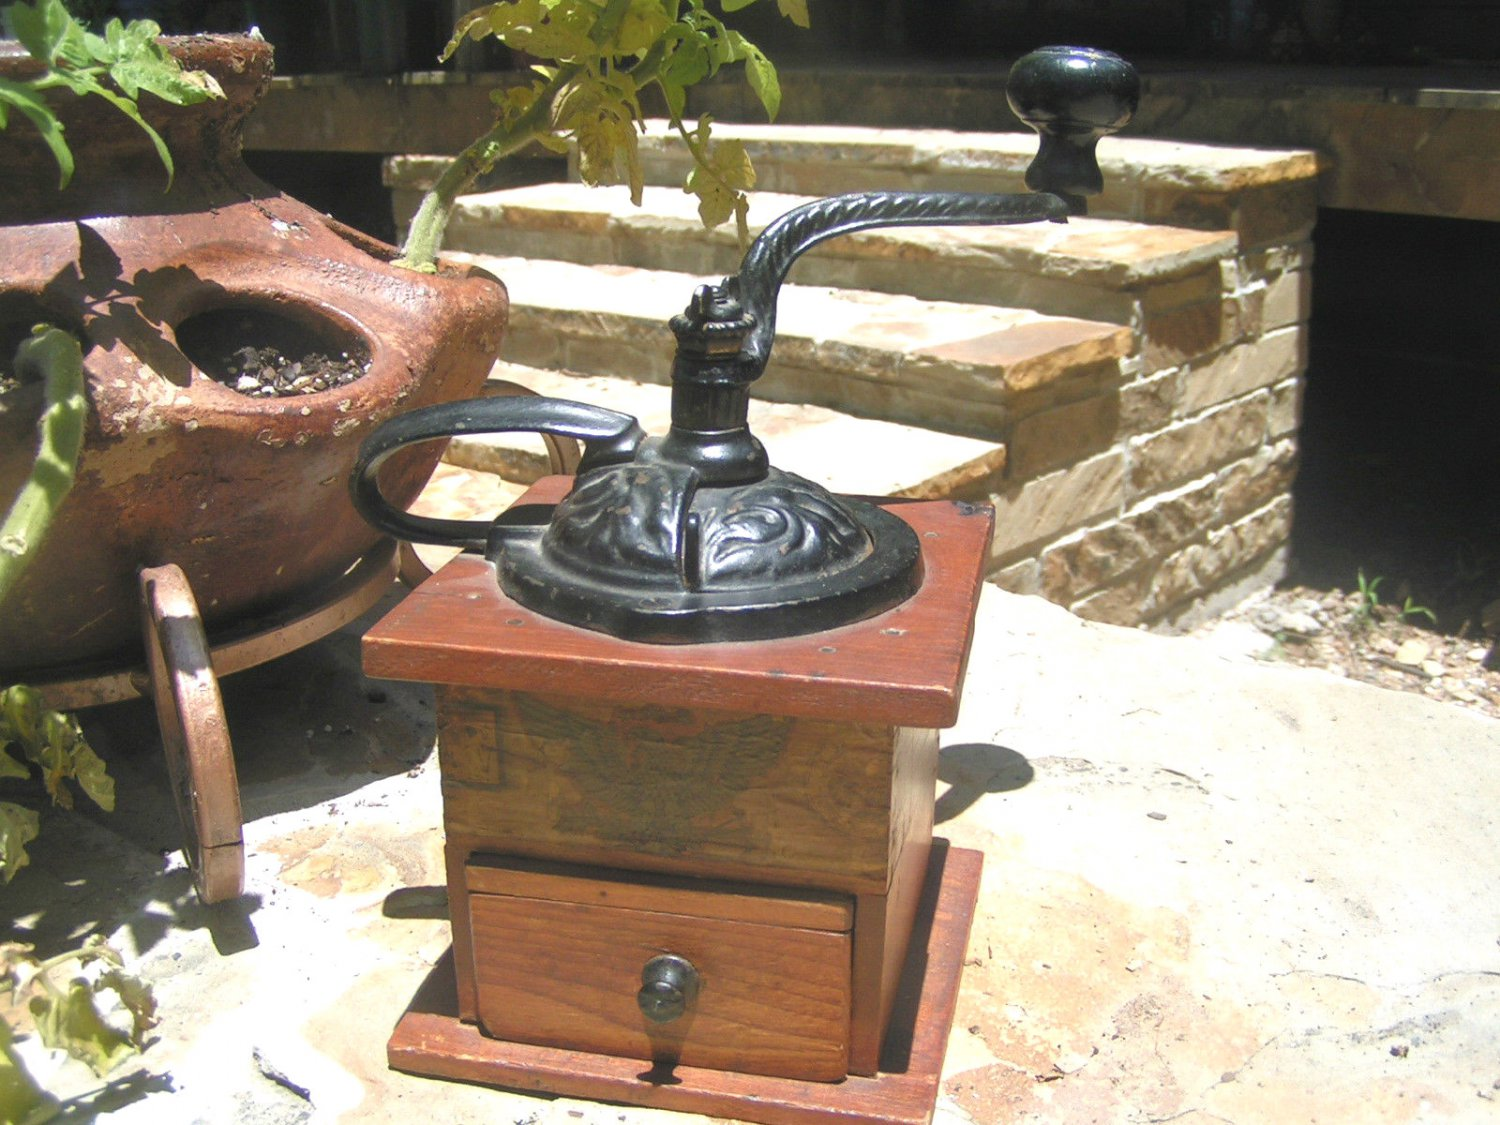 Primitive Old Wooden Dovetailed Coffee Mill Grinder